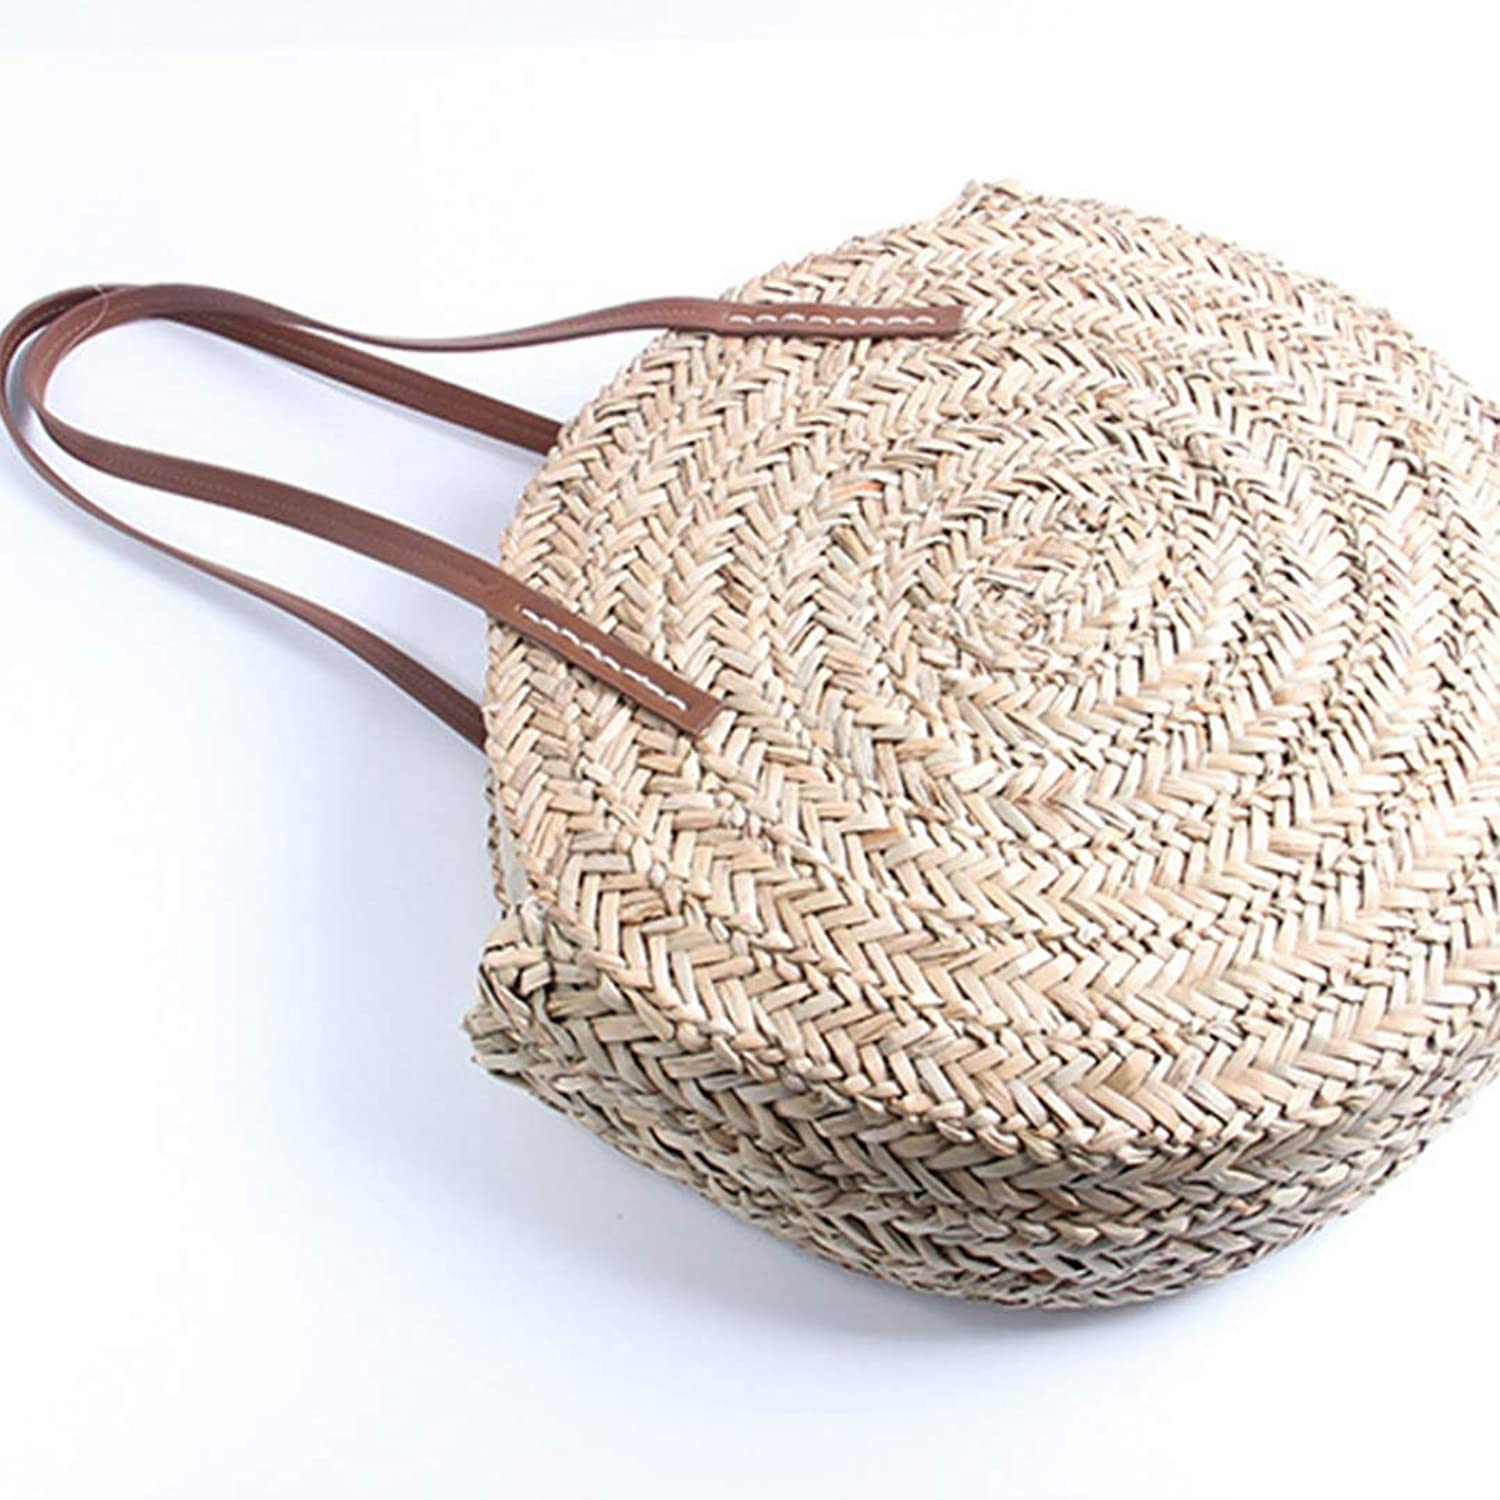 2019 Round Straw Bags Beach Tote Handbag for Braided shoulder rattan designer brand wicker big woven bohemian